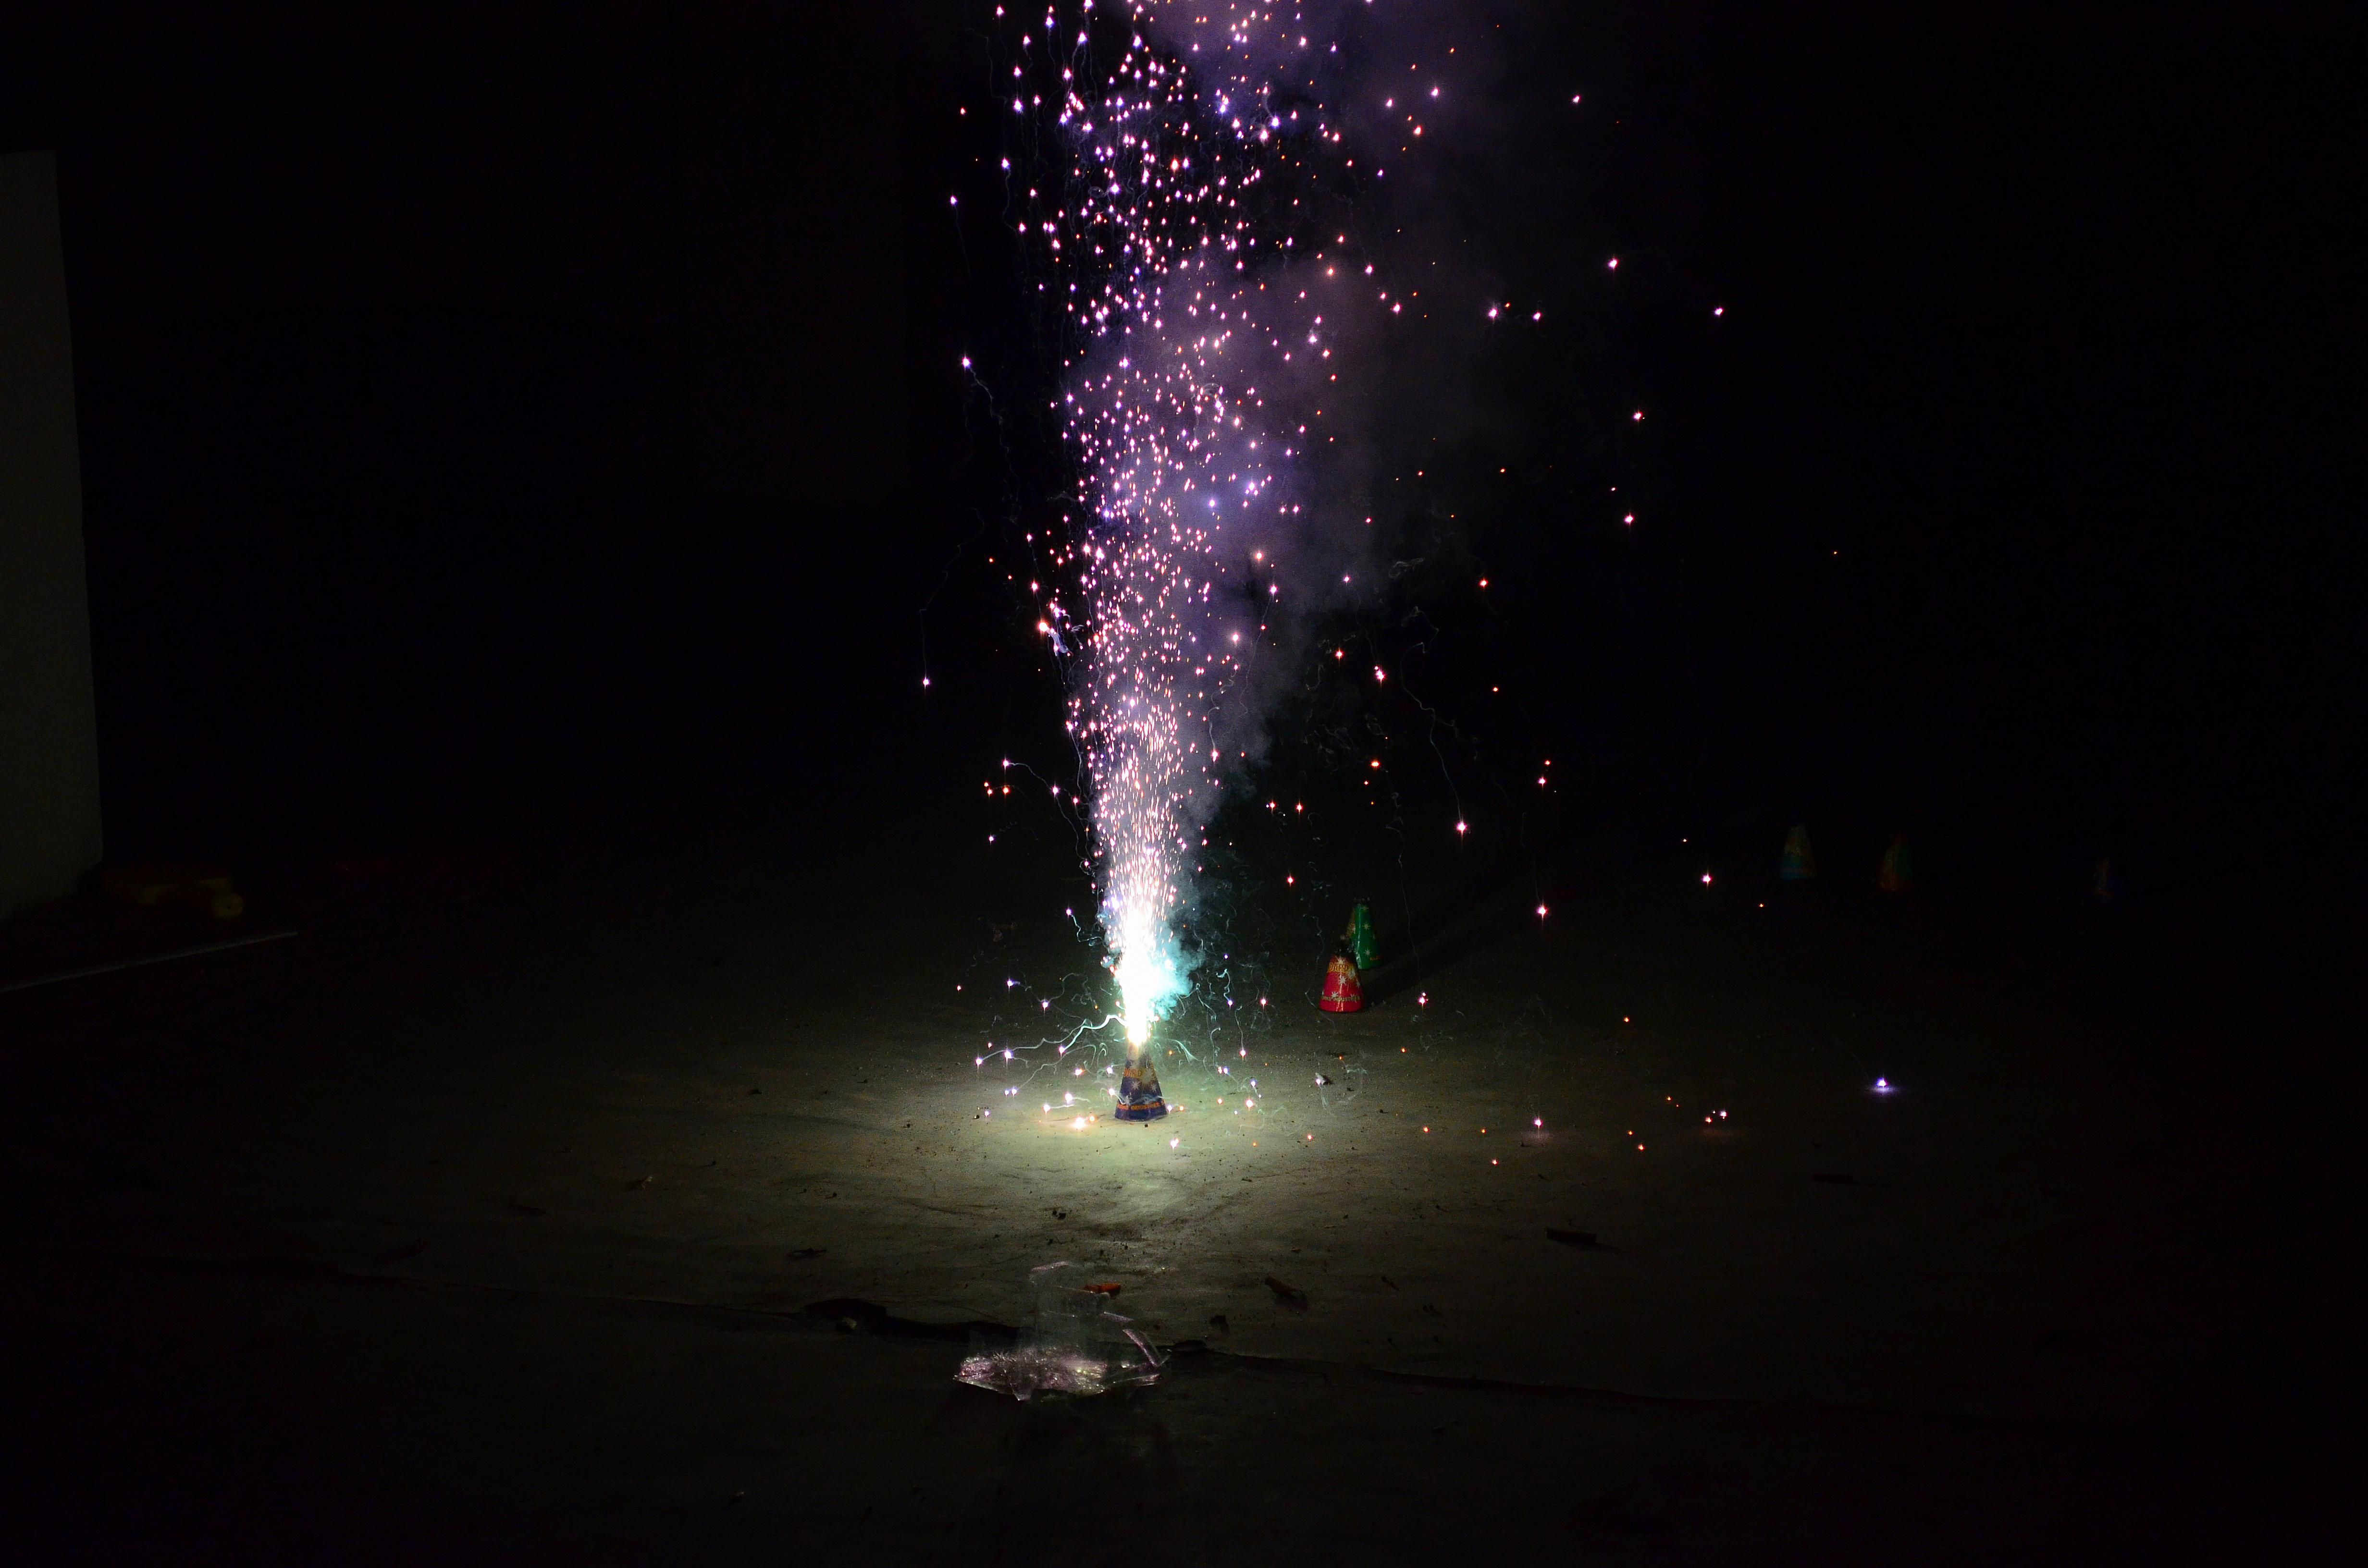 Fun Homemade Fireworks Projects to Make Yourself